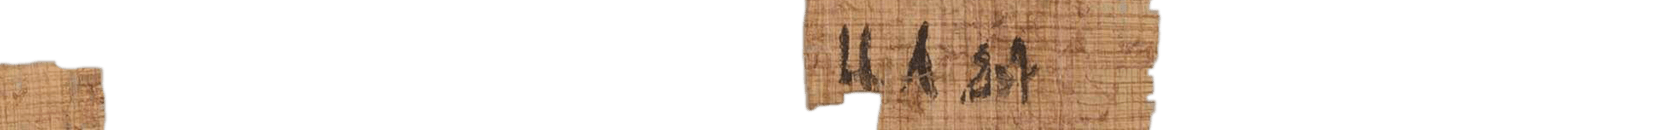 the Turin king list 4.18 (photo of the hieratic text)